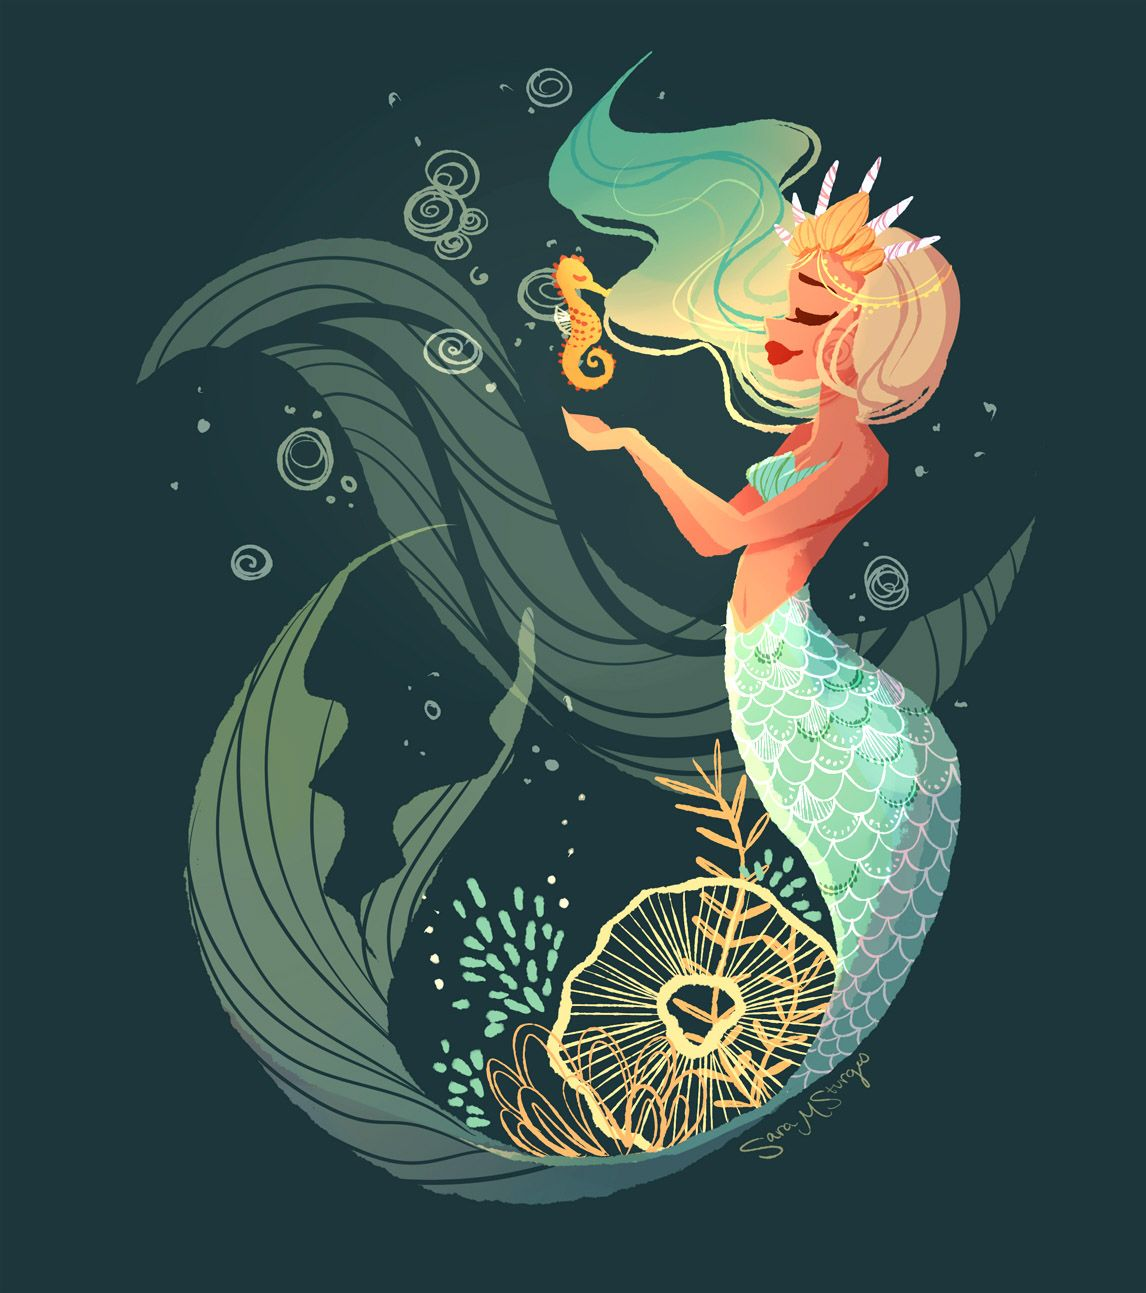 Seahorse Mermaid - 8x10 Print from The Art of Sara Sturges